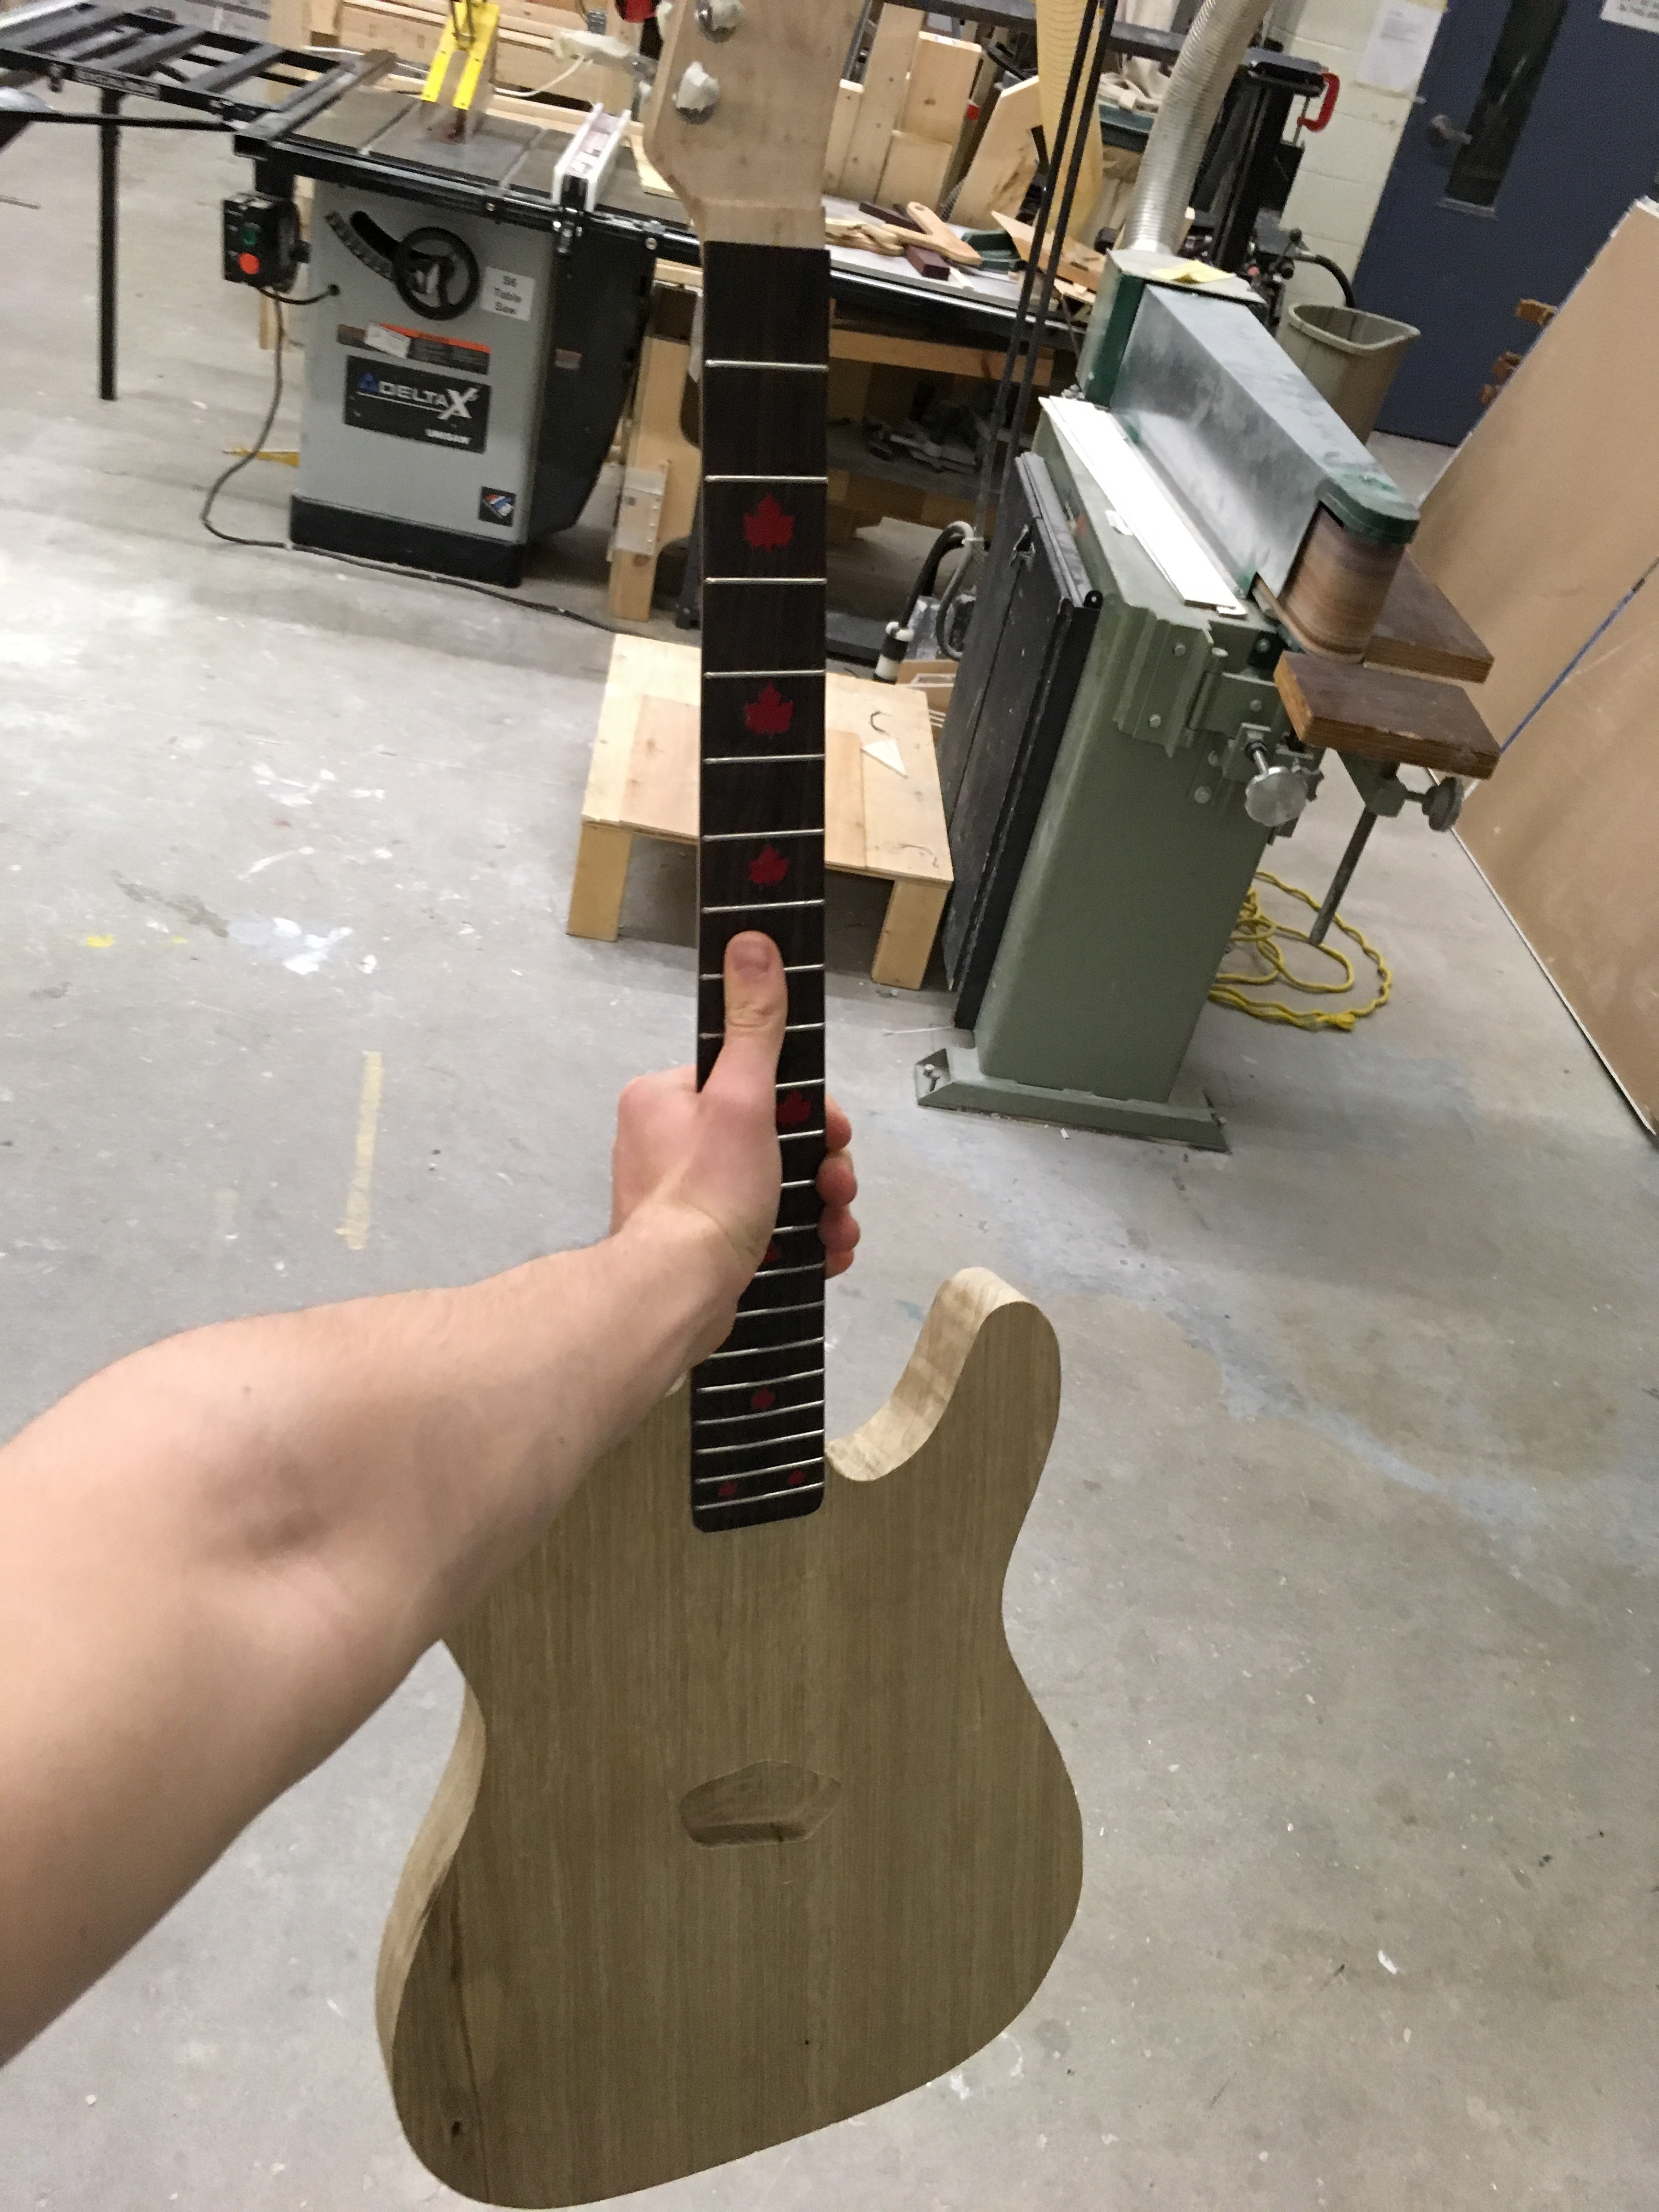 Picture of Fitting the Neck and Body Together